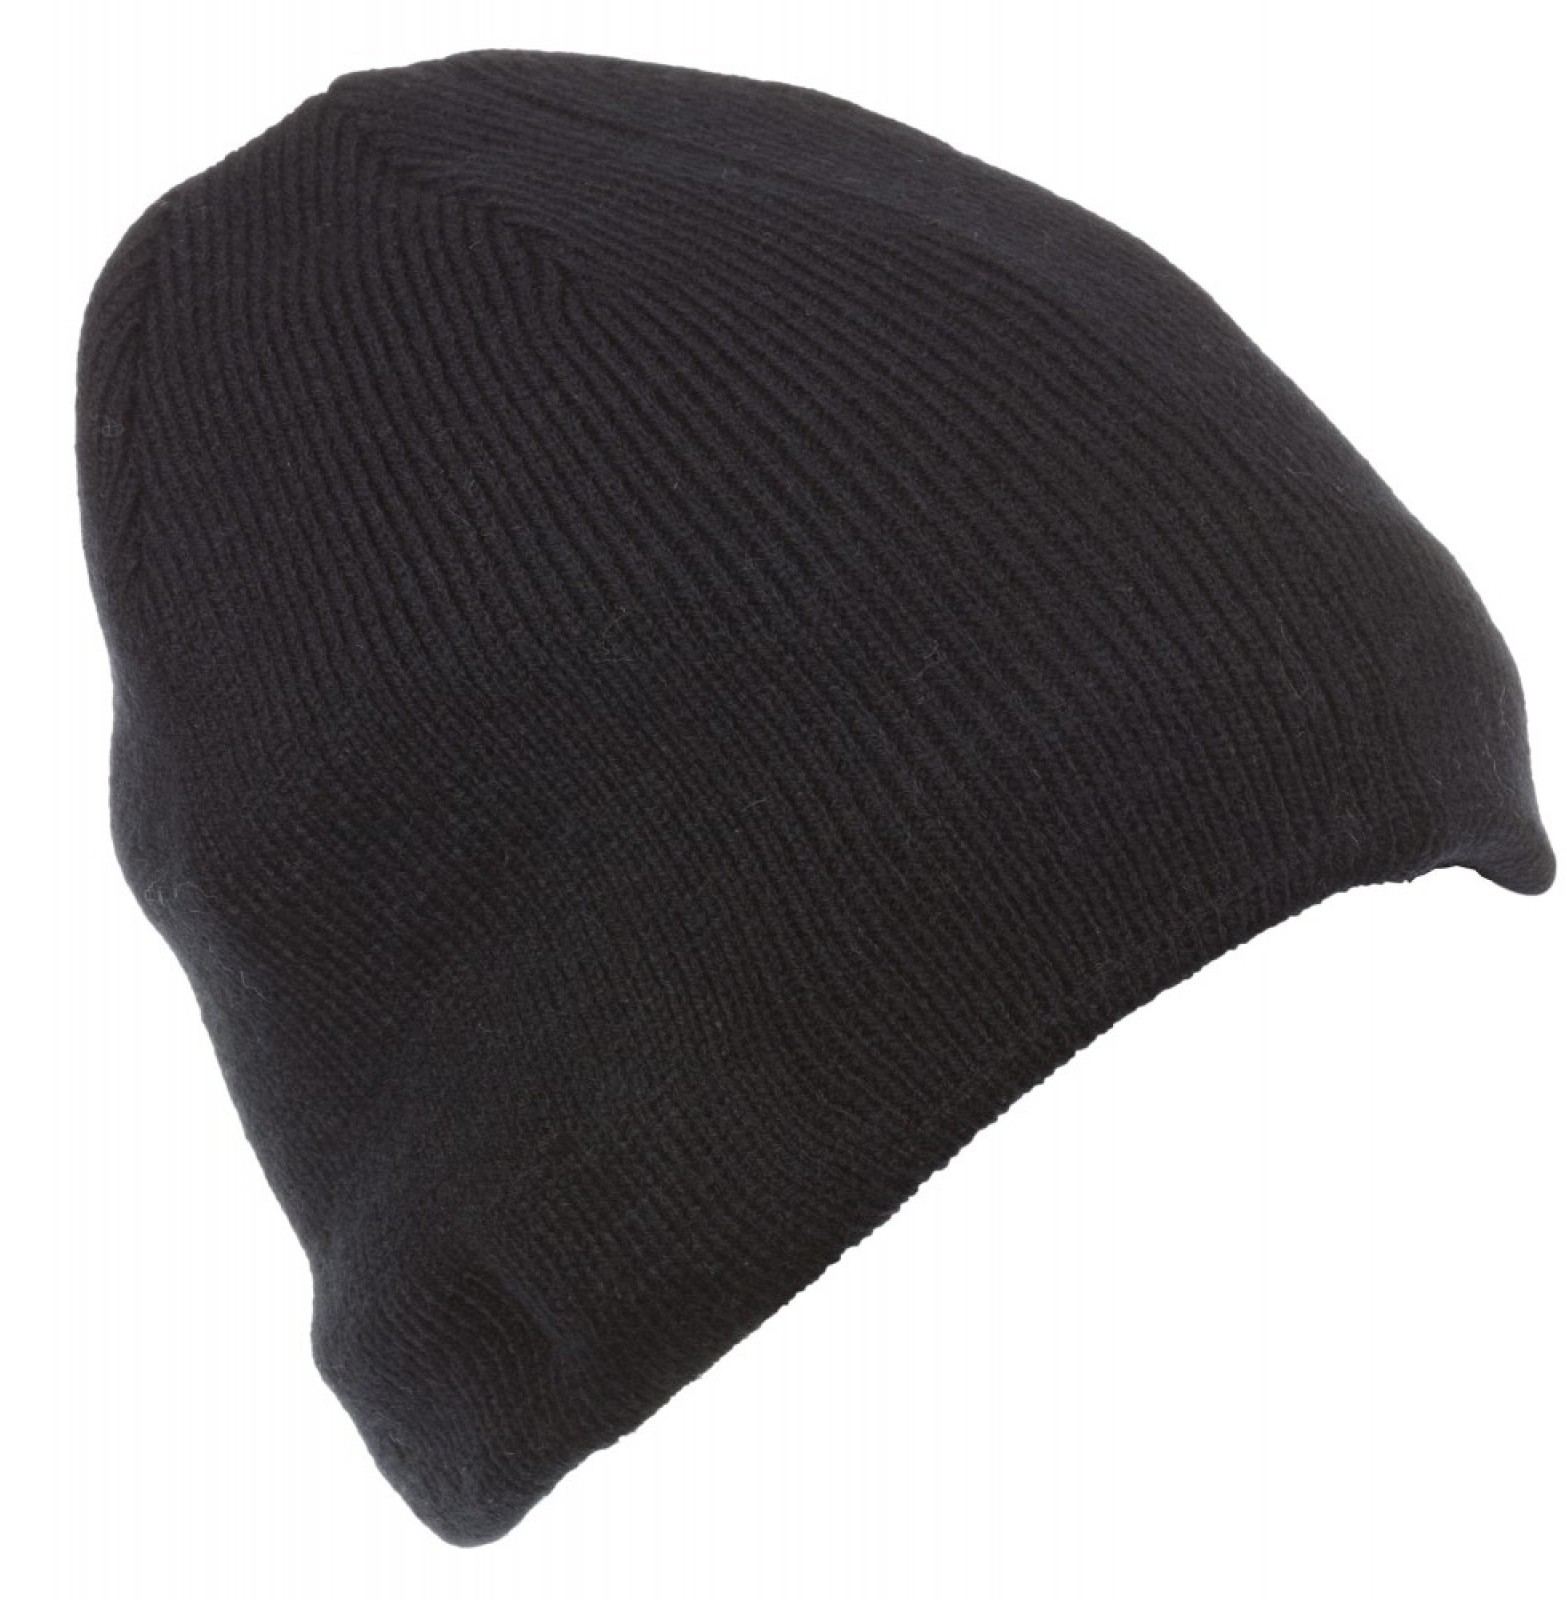 KitSound Audio Beanie KSBEARIBBK2